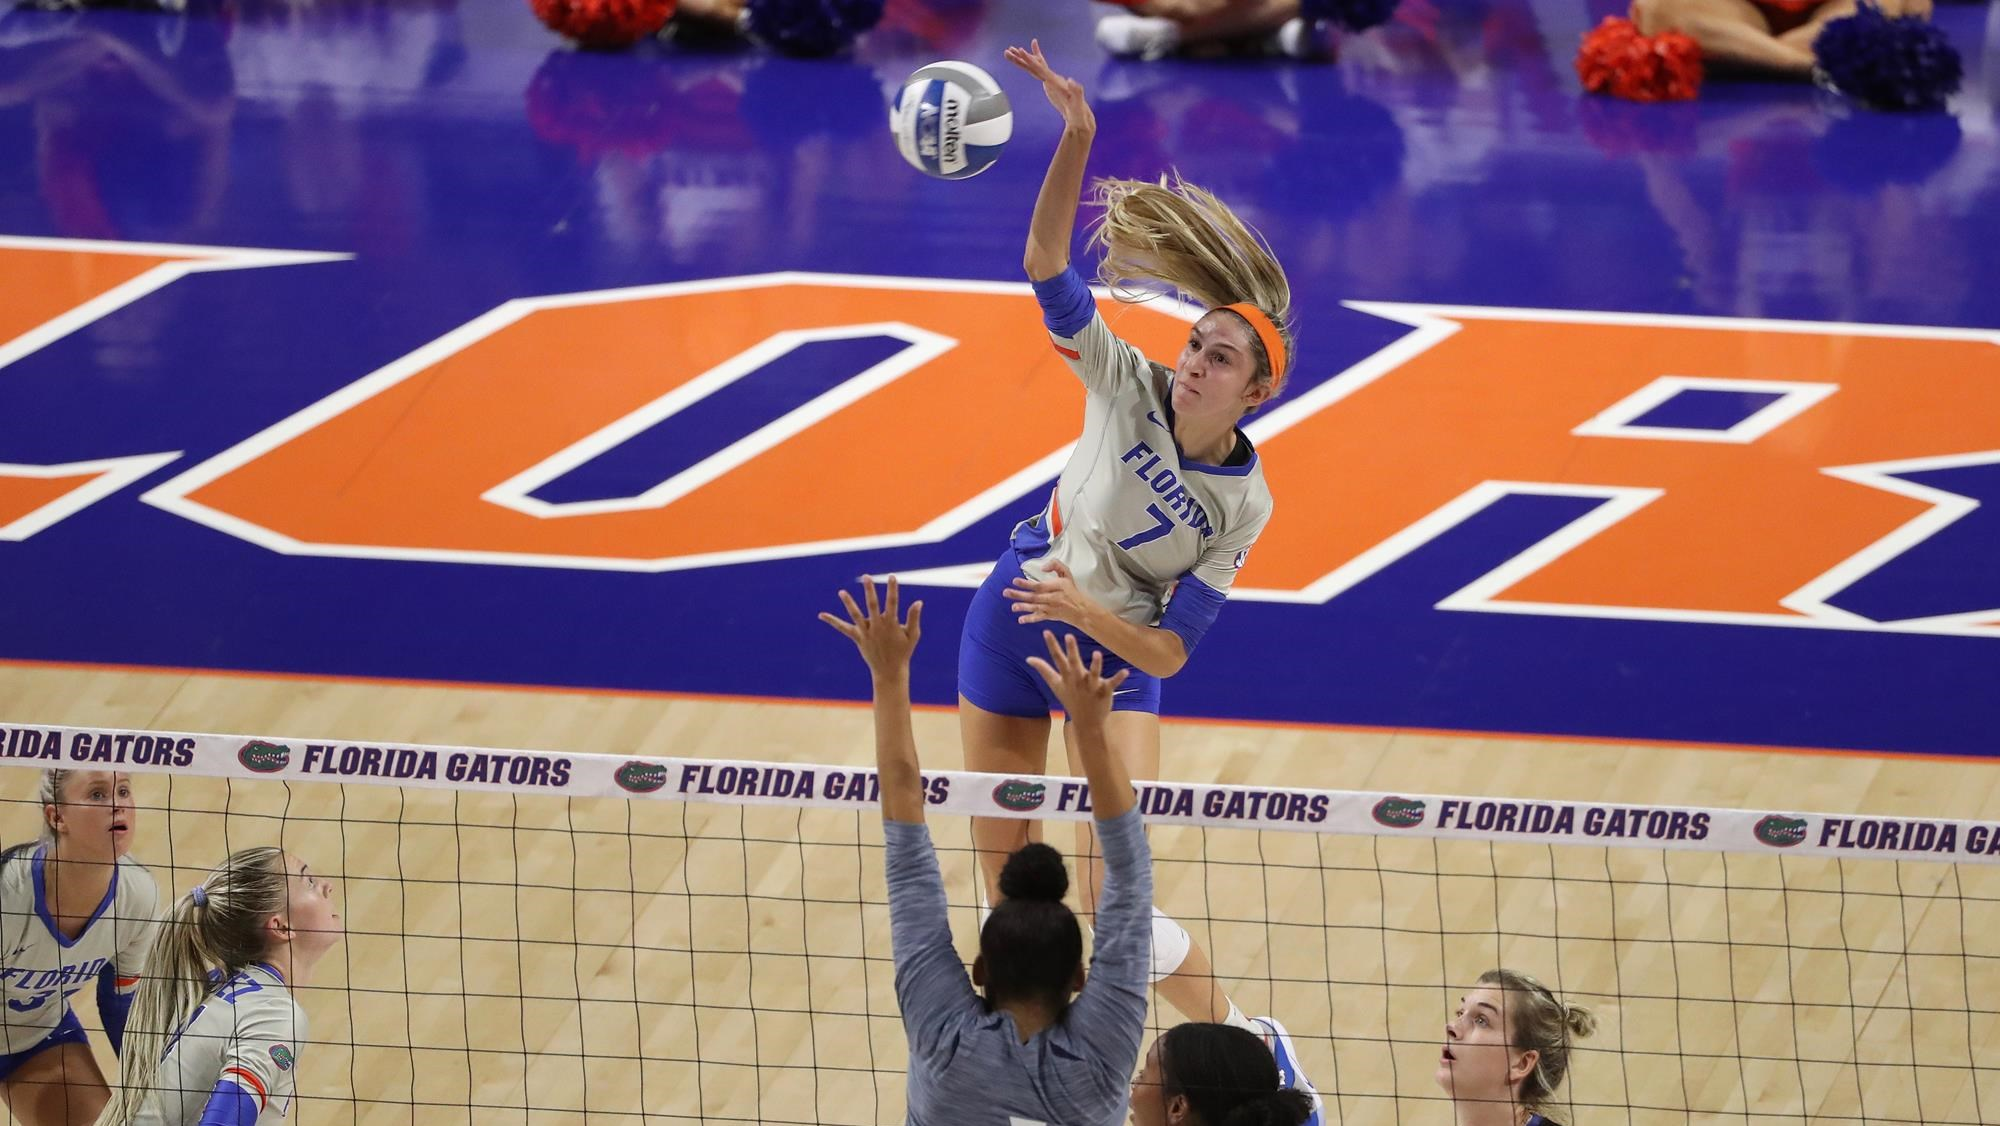 Paige Hammons Volleyball Florida Gators